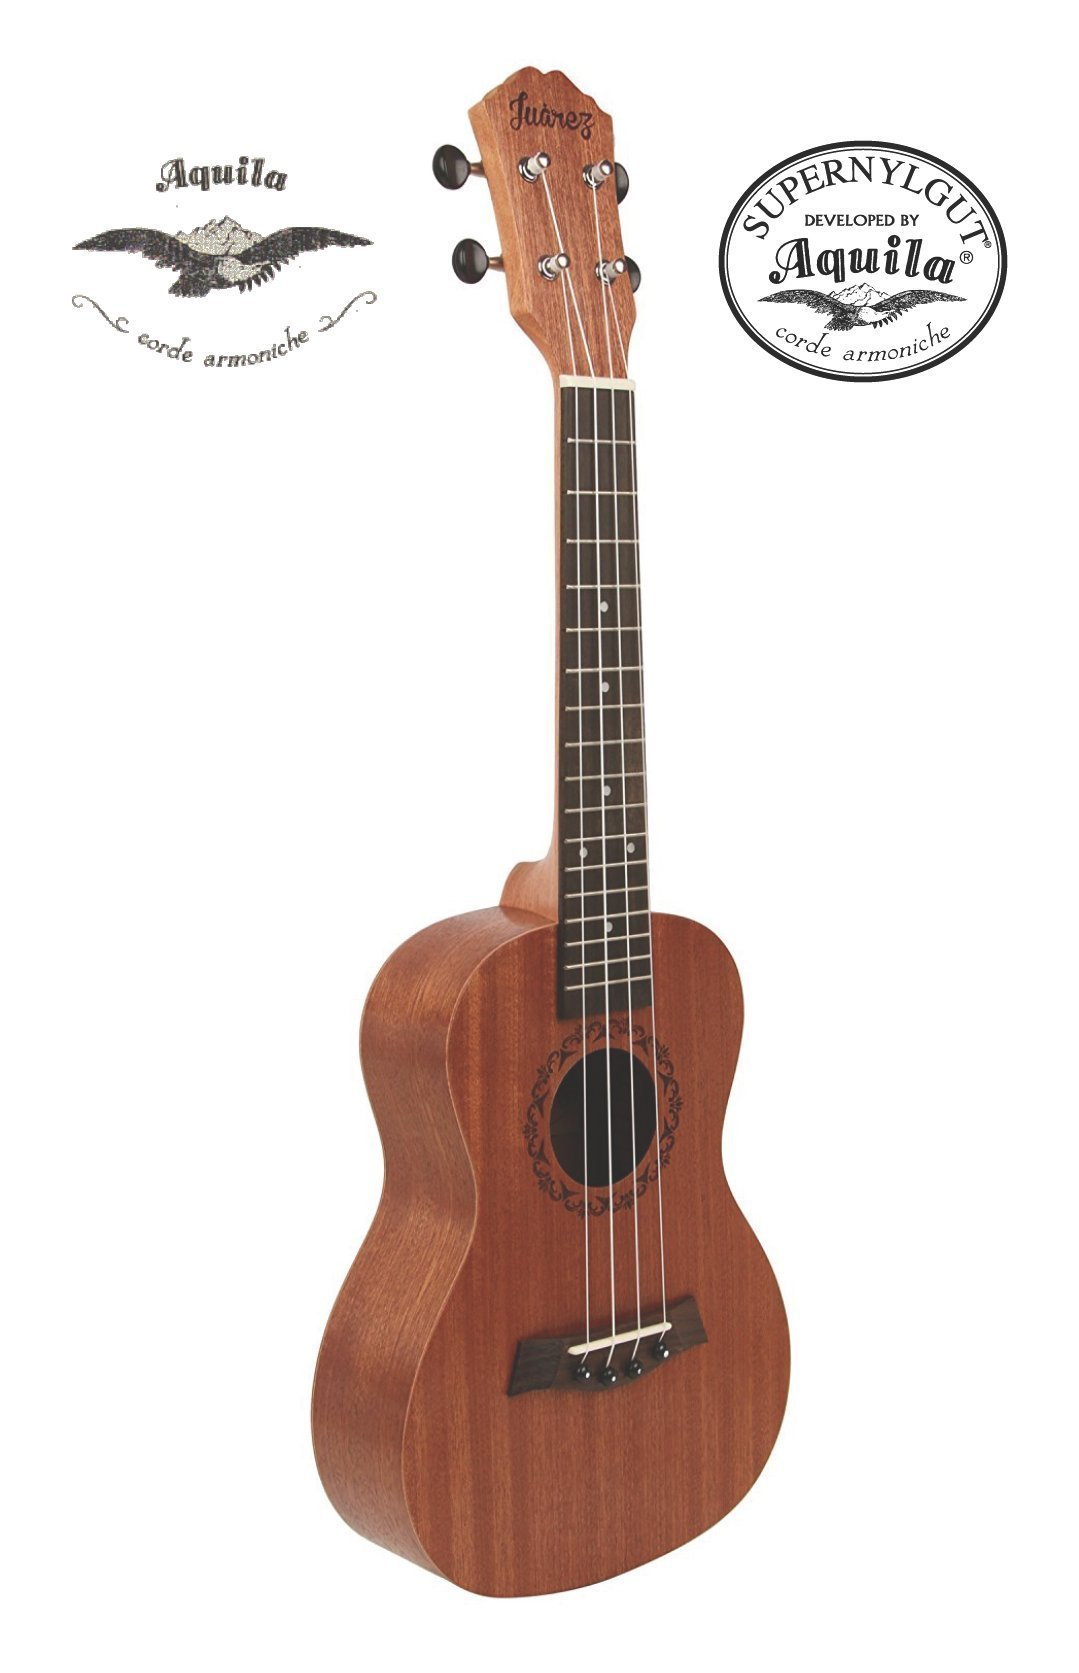 "Juarez JRZ23UK/NA 23"" Soprano Ukulele Kit, Aquila Strings (Made In Italy), Hawaiian Guitar, Rosewood Fingerboard, With Bag And Picks- Natural Brown product image"